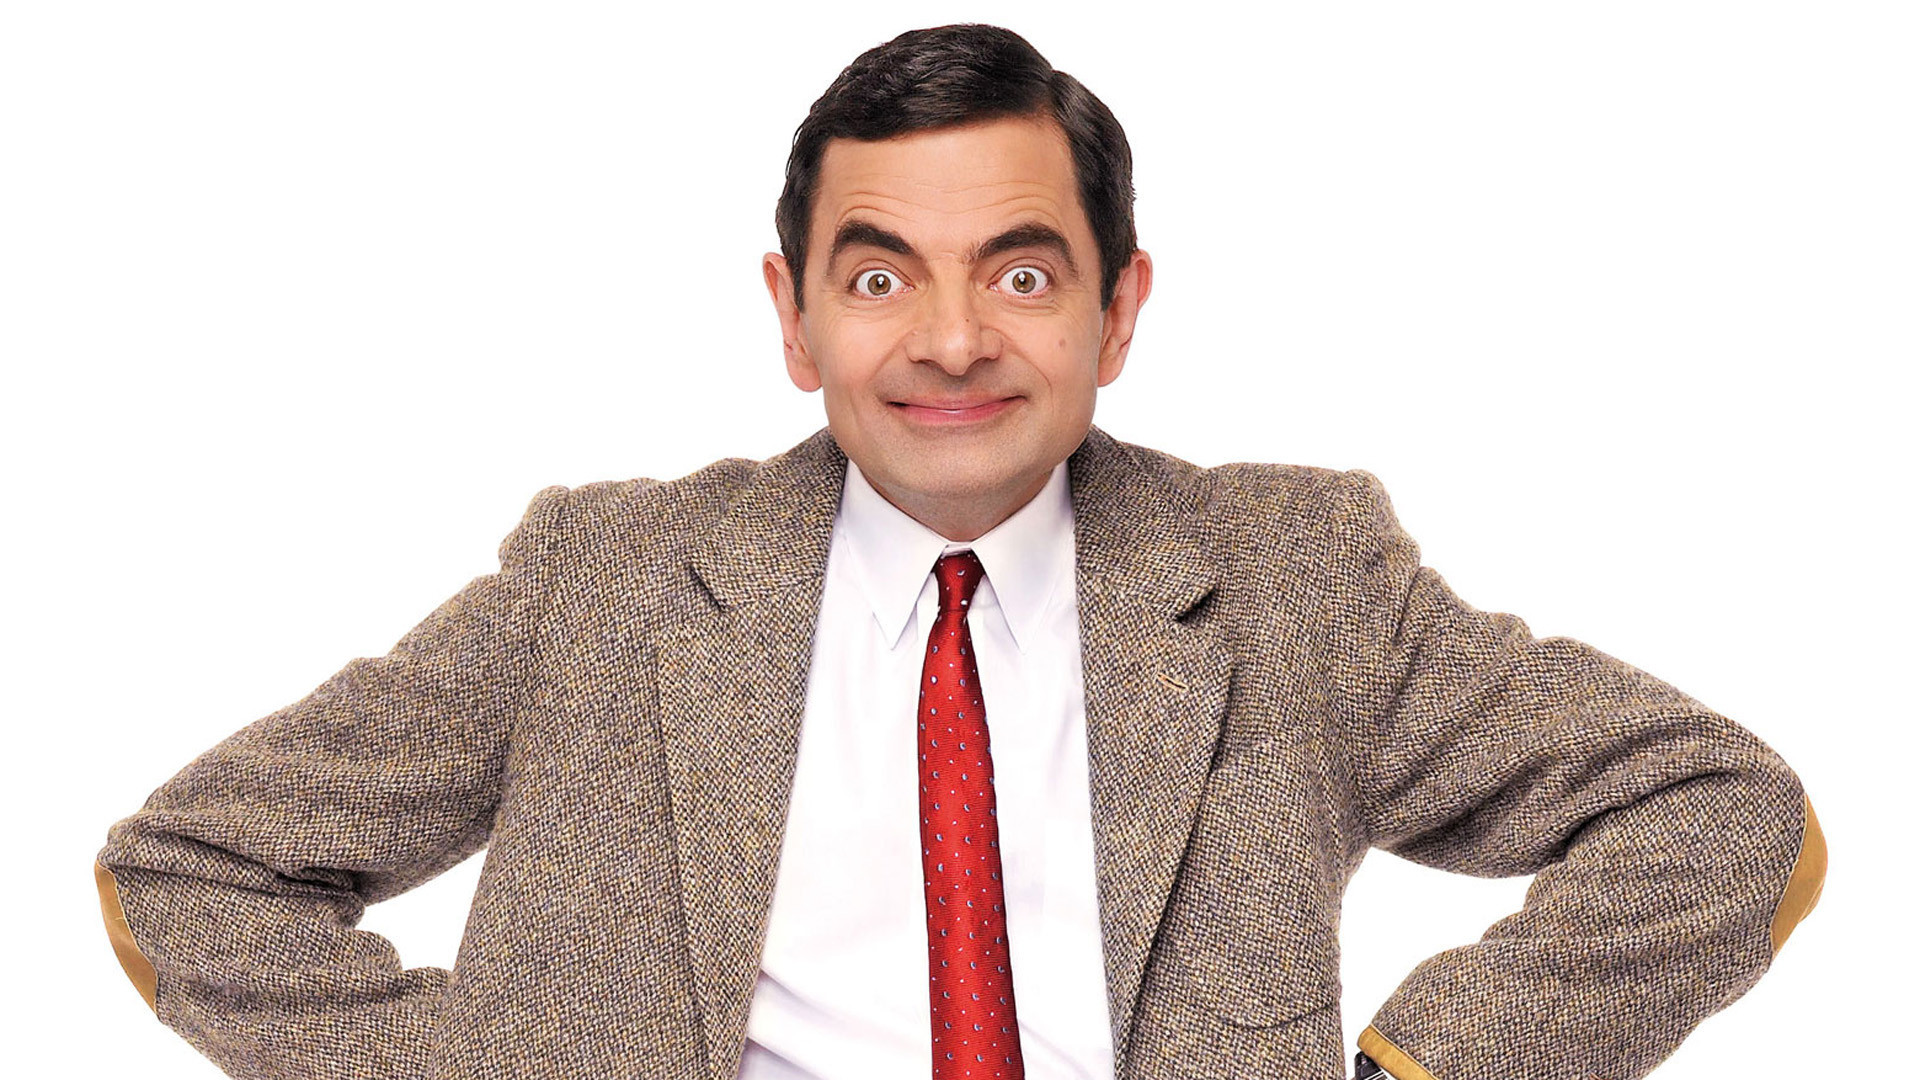 Atkinson says goodbye to beloved character mr bean1